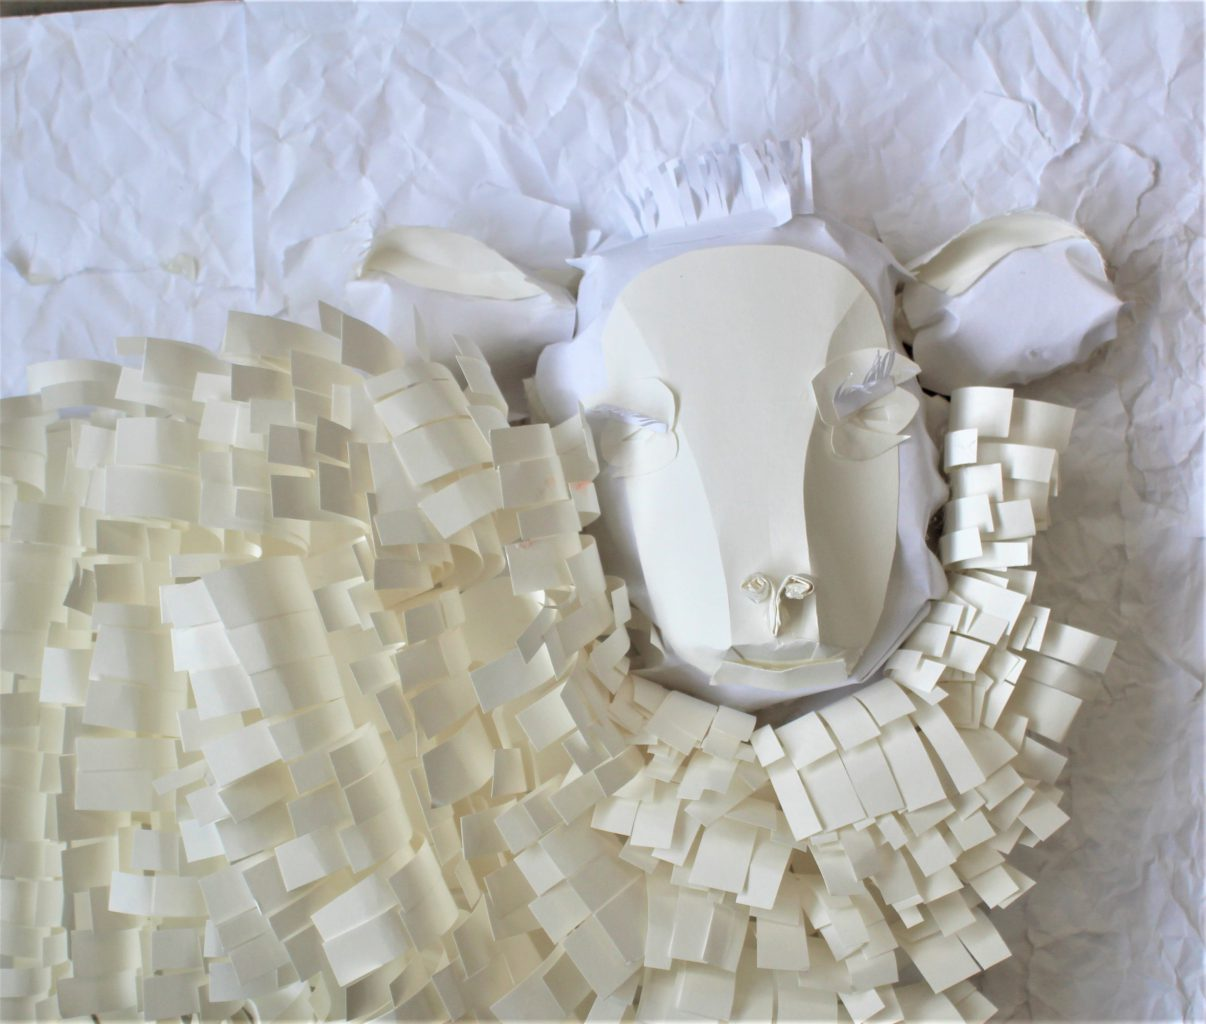 a sheep is made from curled pieces of paper